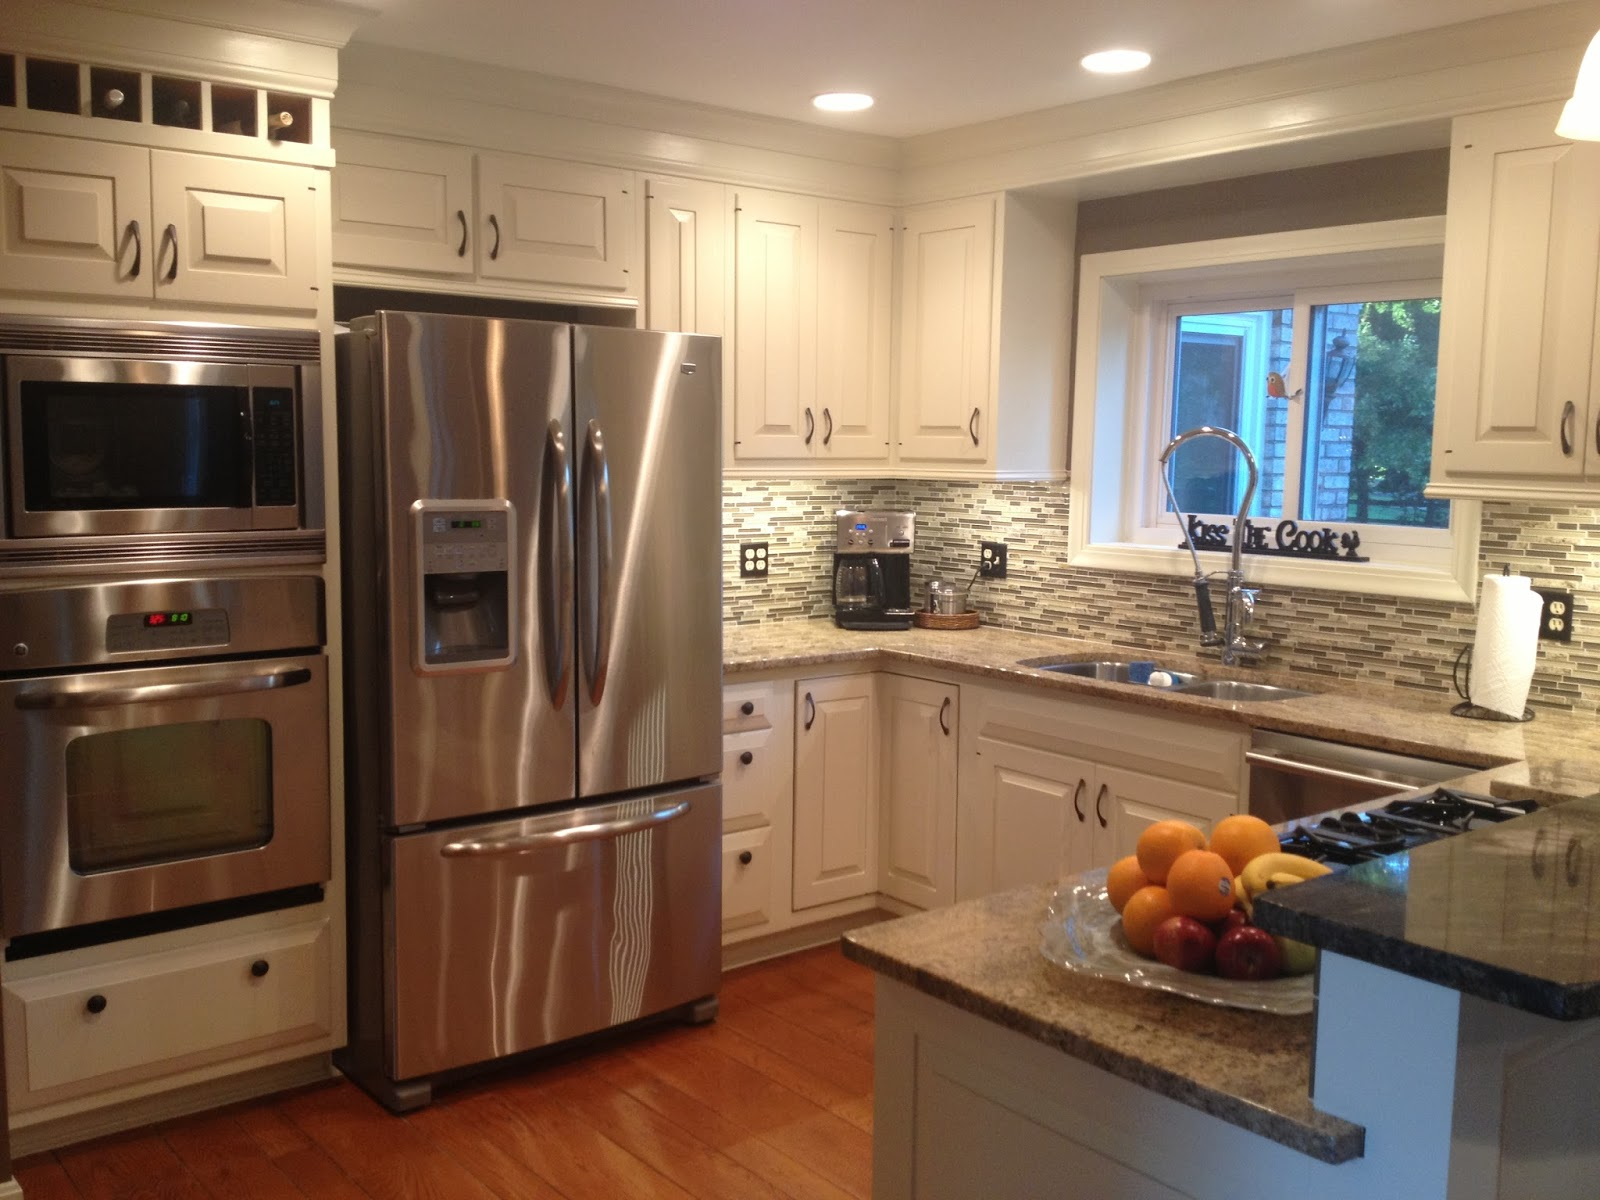 Four seasons style the new kitchen remodel on a budget for Kitchen remodel ideas on a budget